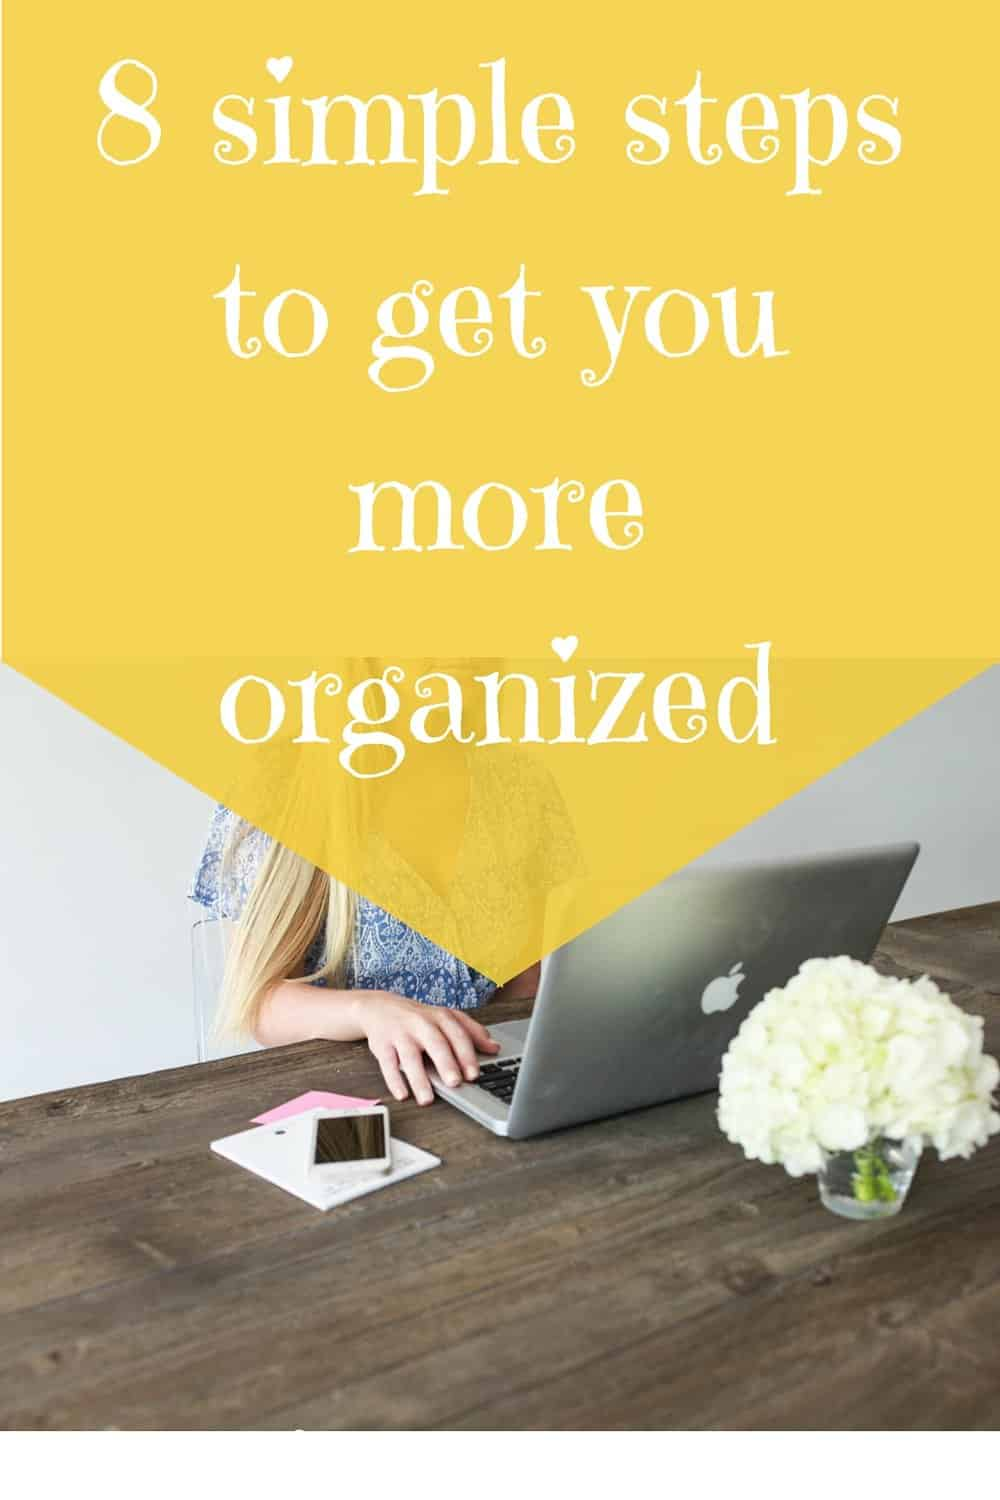 Organization: 8 simple steps to get you more organized